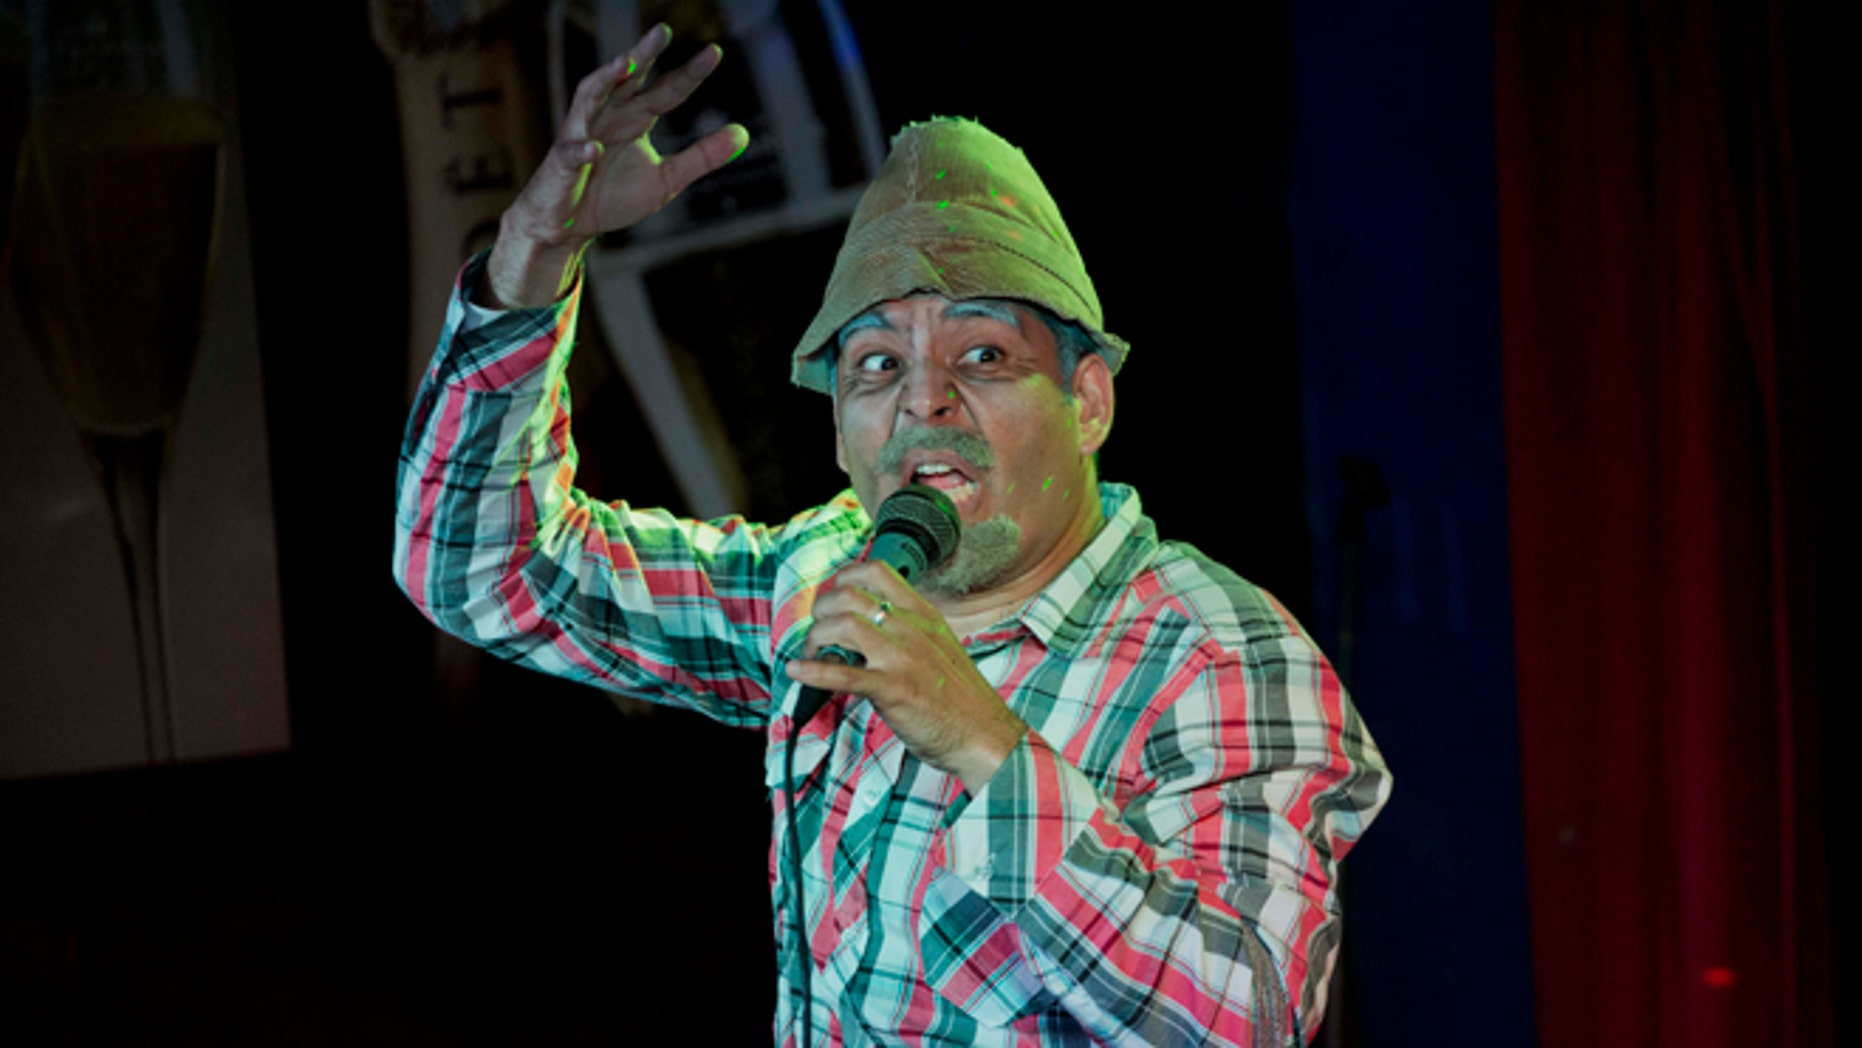 """Cuban actor Luis Silva whose stage name is """"Panfilo"""" performs in front of  the public in Havana, Cuba, Monday, Dec. 8, 2014. The comedian's jokes resonate deeply with Cubans frustrated by petty corruption, scarcity of many goods, and the poor quality of even the most basic staples. (AP Photo/Desmond Boylan)"""